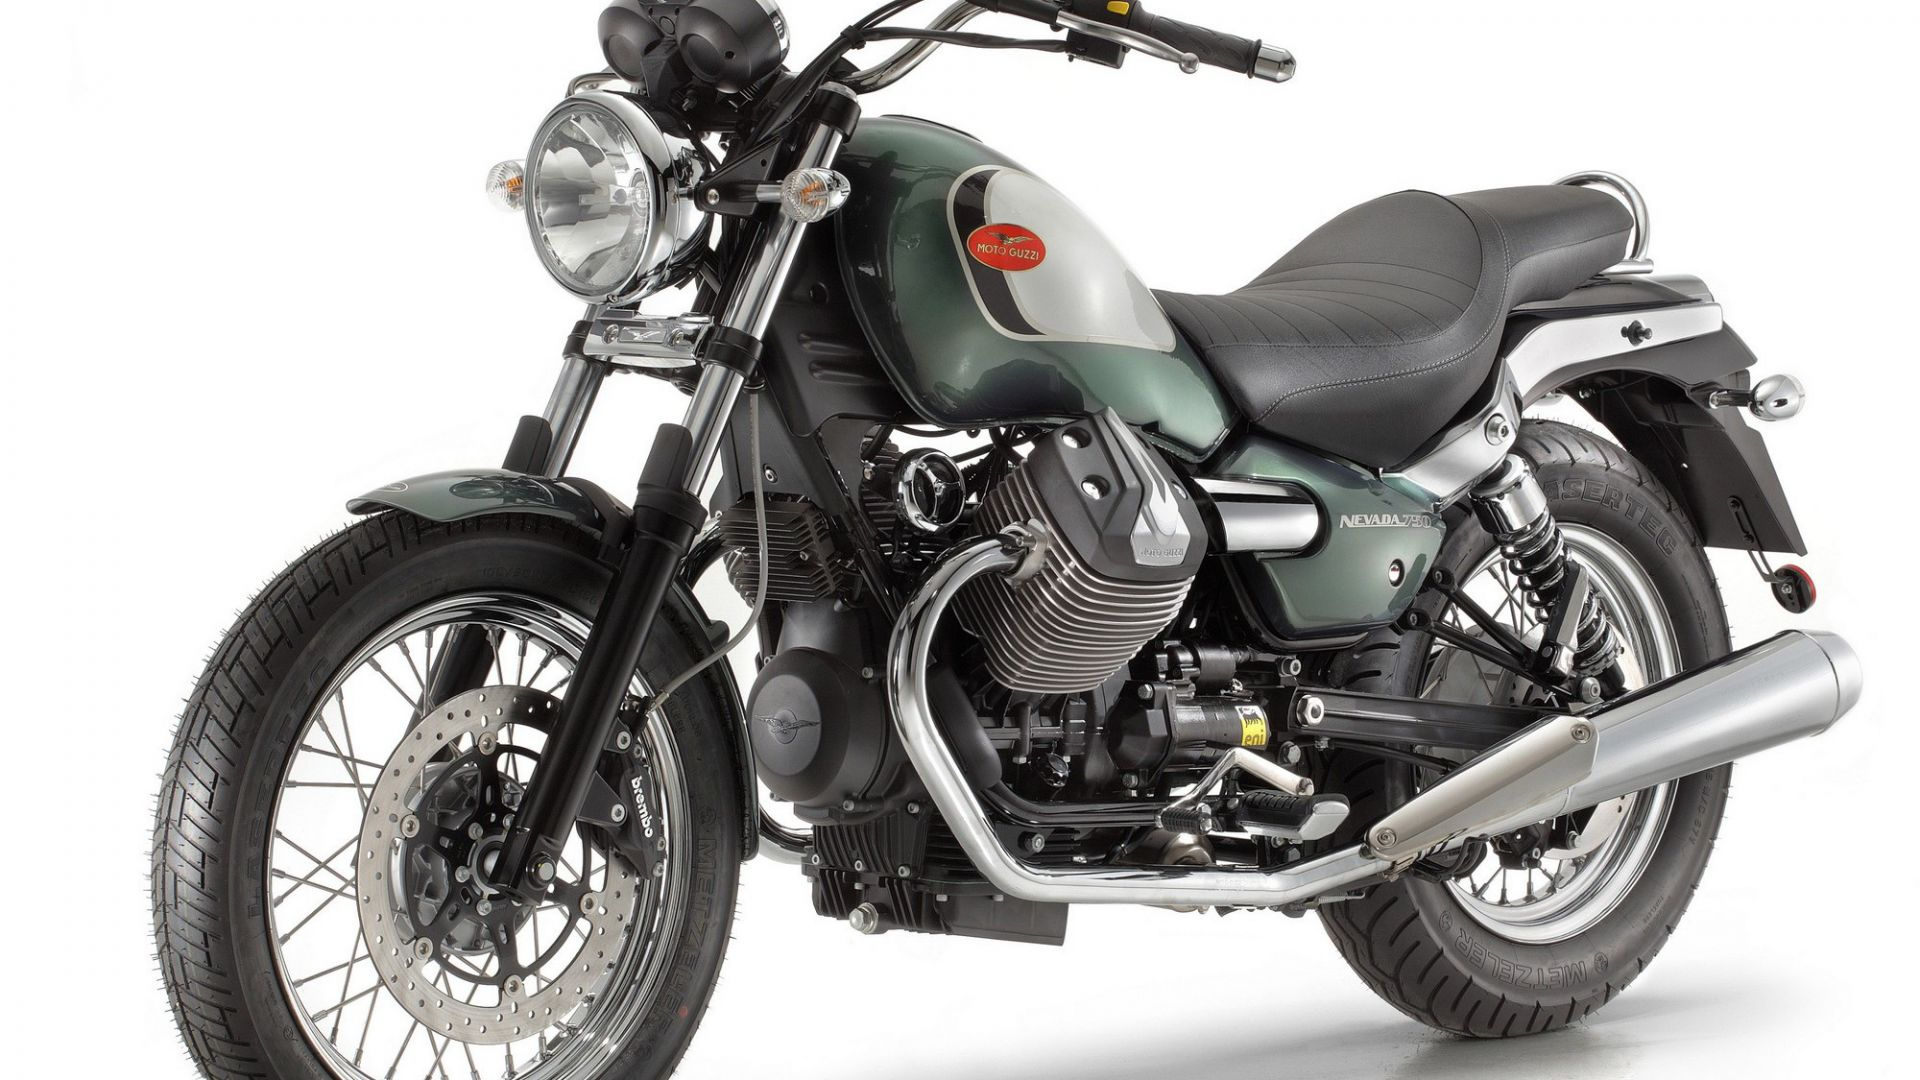 2021 Moto Guzzi V7 Special Guide • Total Motorcycle